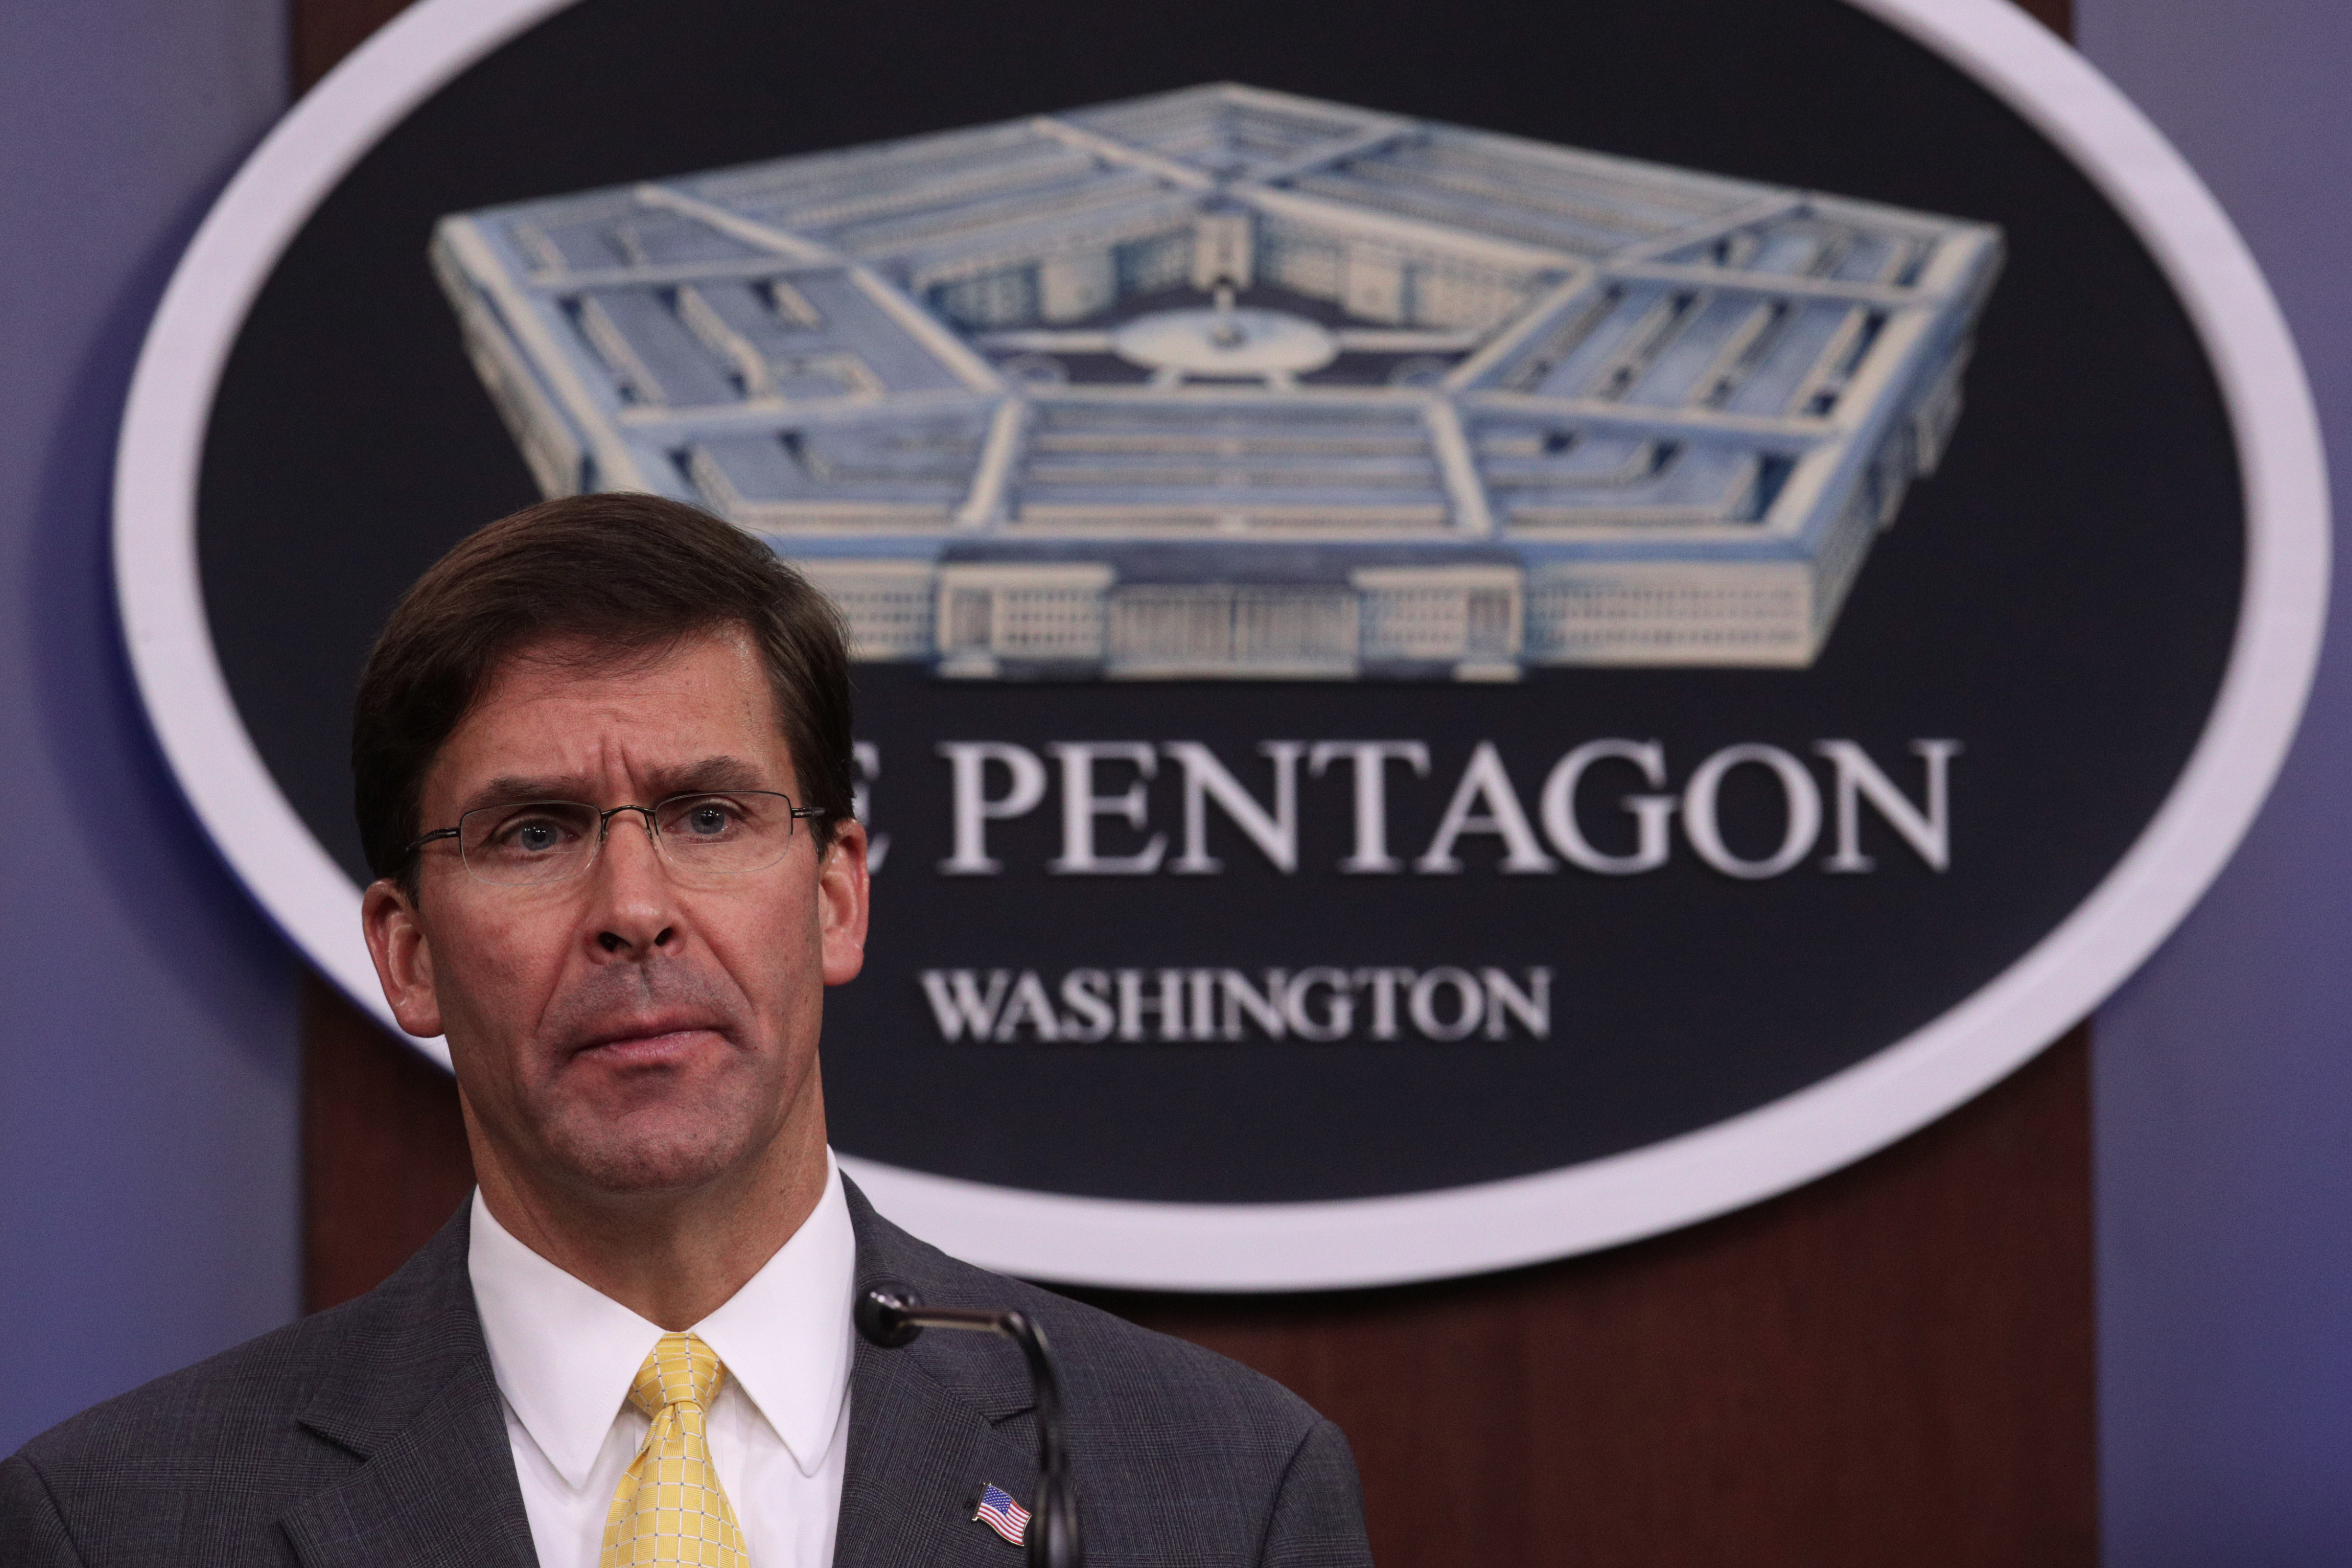 U.S. Secretary of Defense Mark Esper holds a media briefing at the Pentagon August 28, 2019 in Arlington, Virginia.